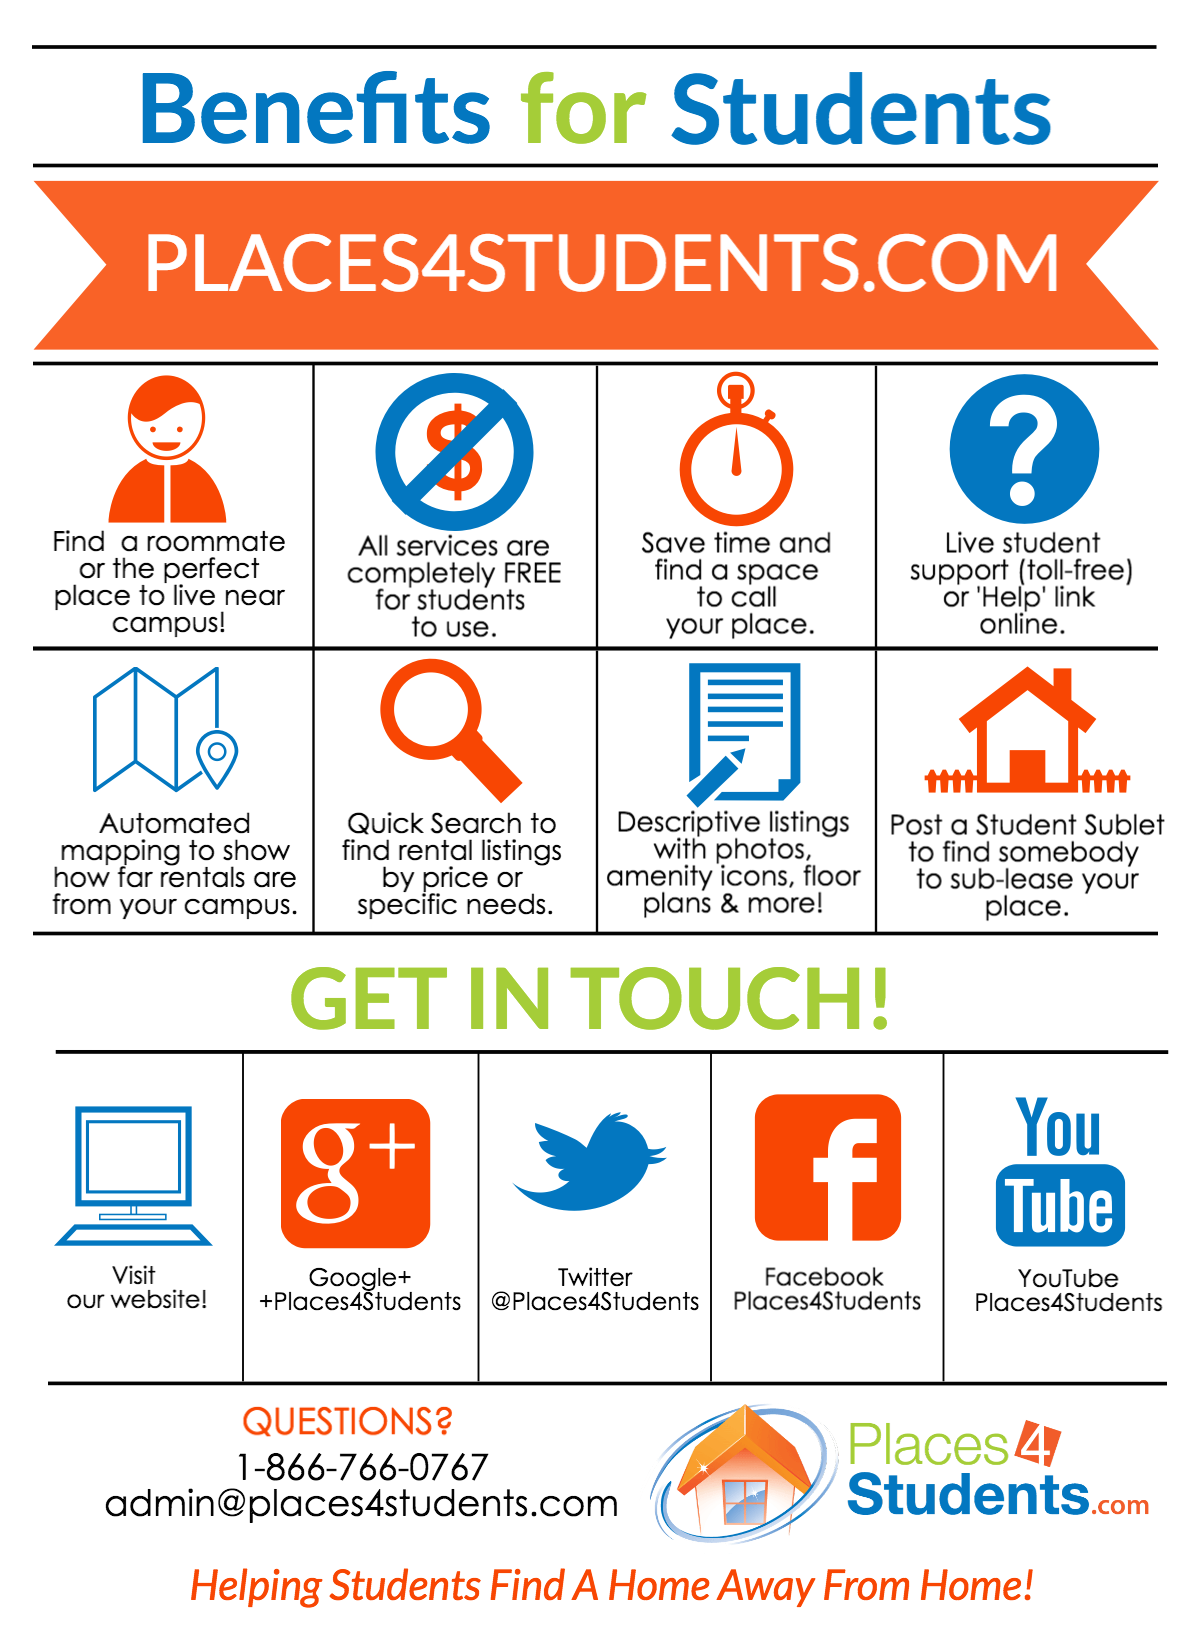 Places4students.com - Helping Students Find A Home Away From Home